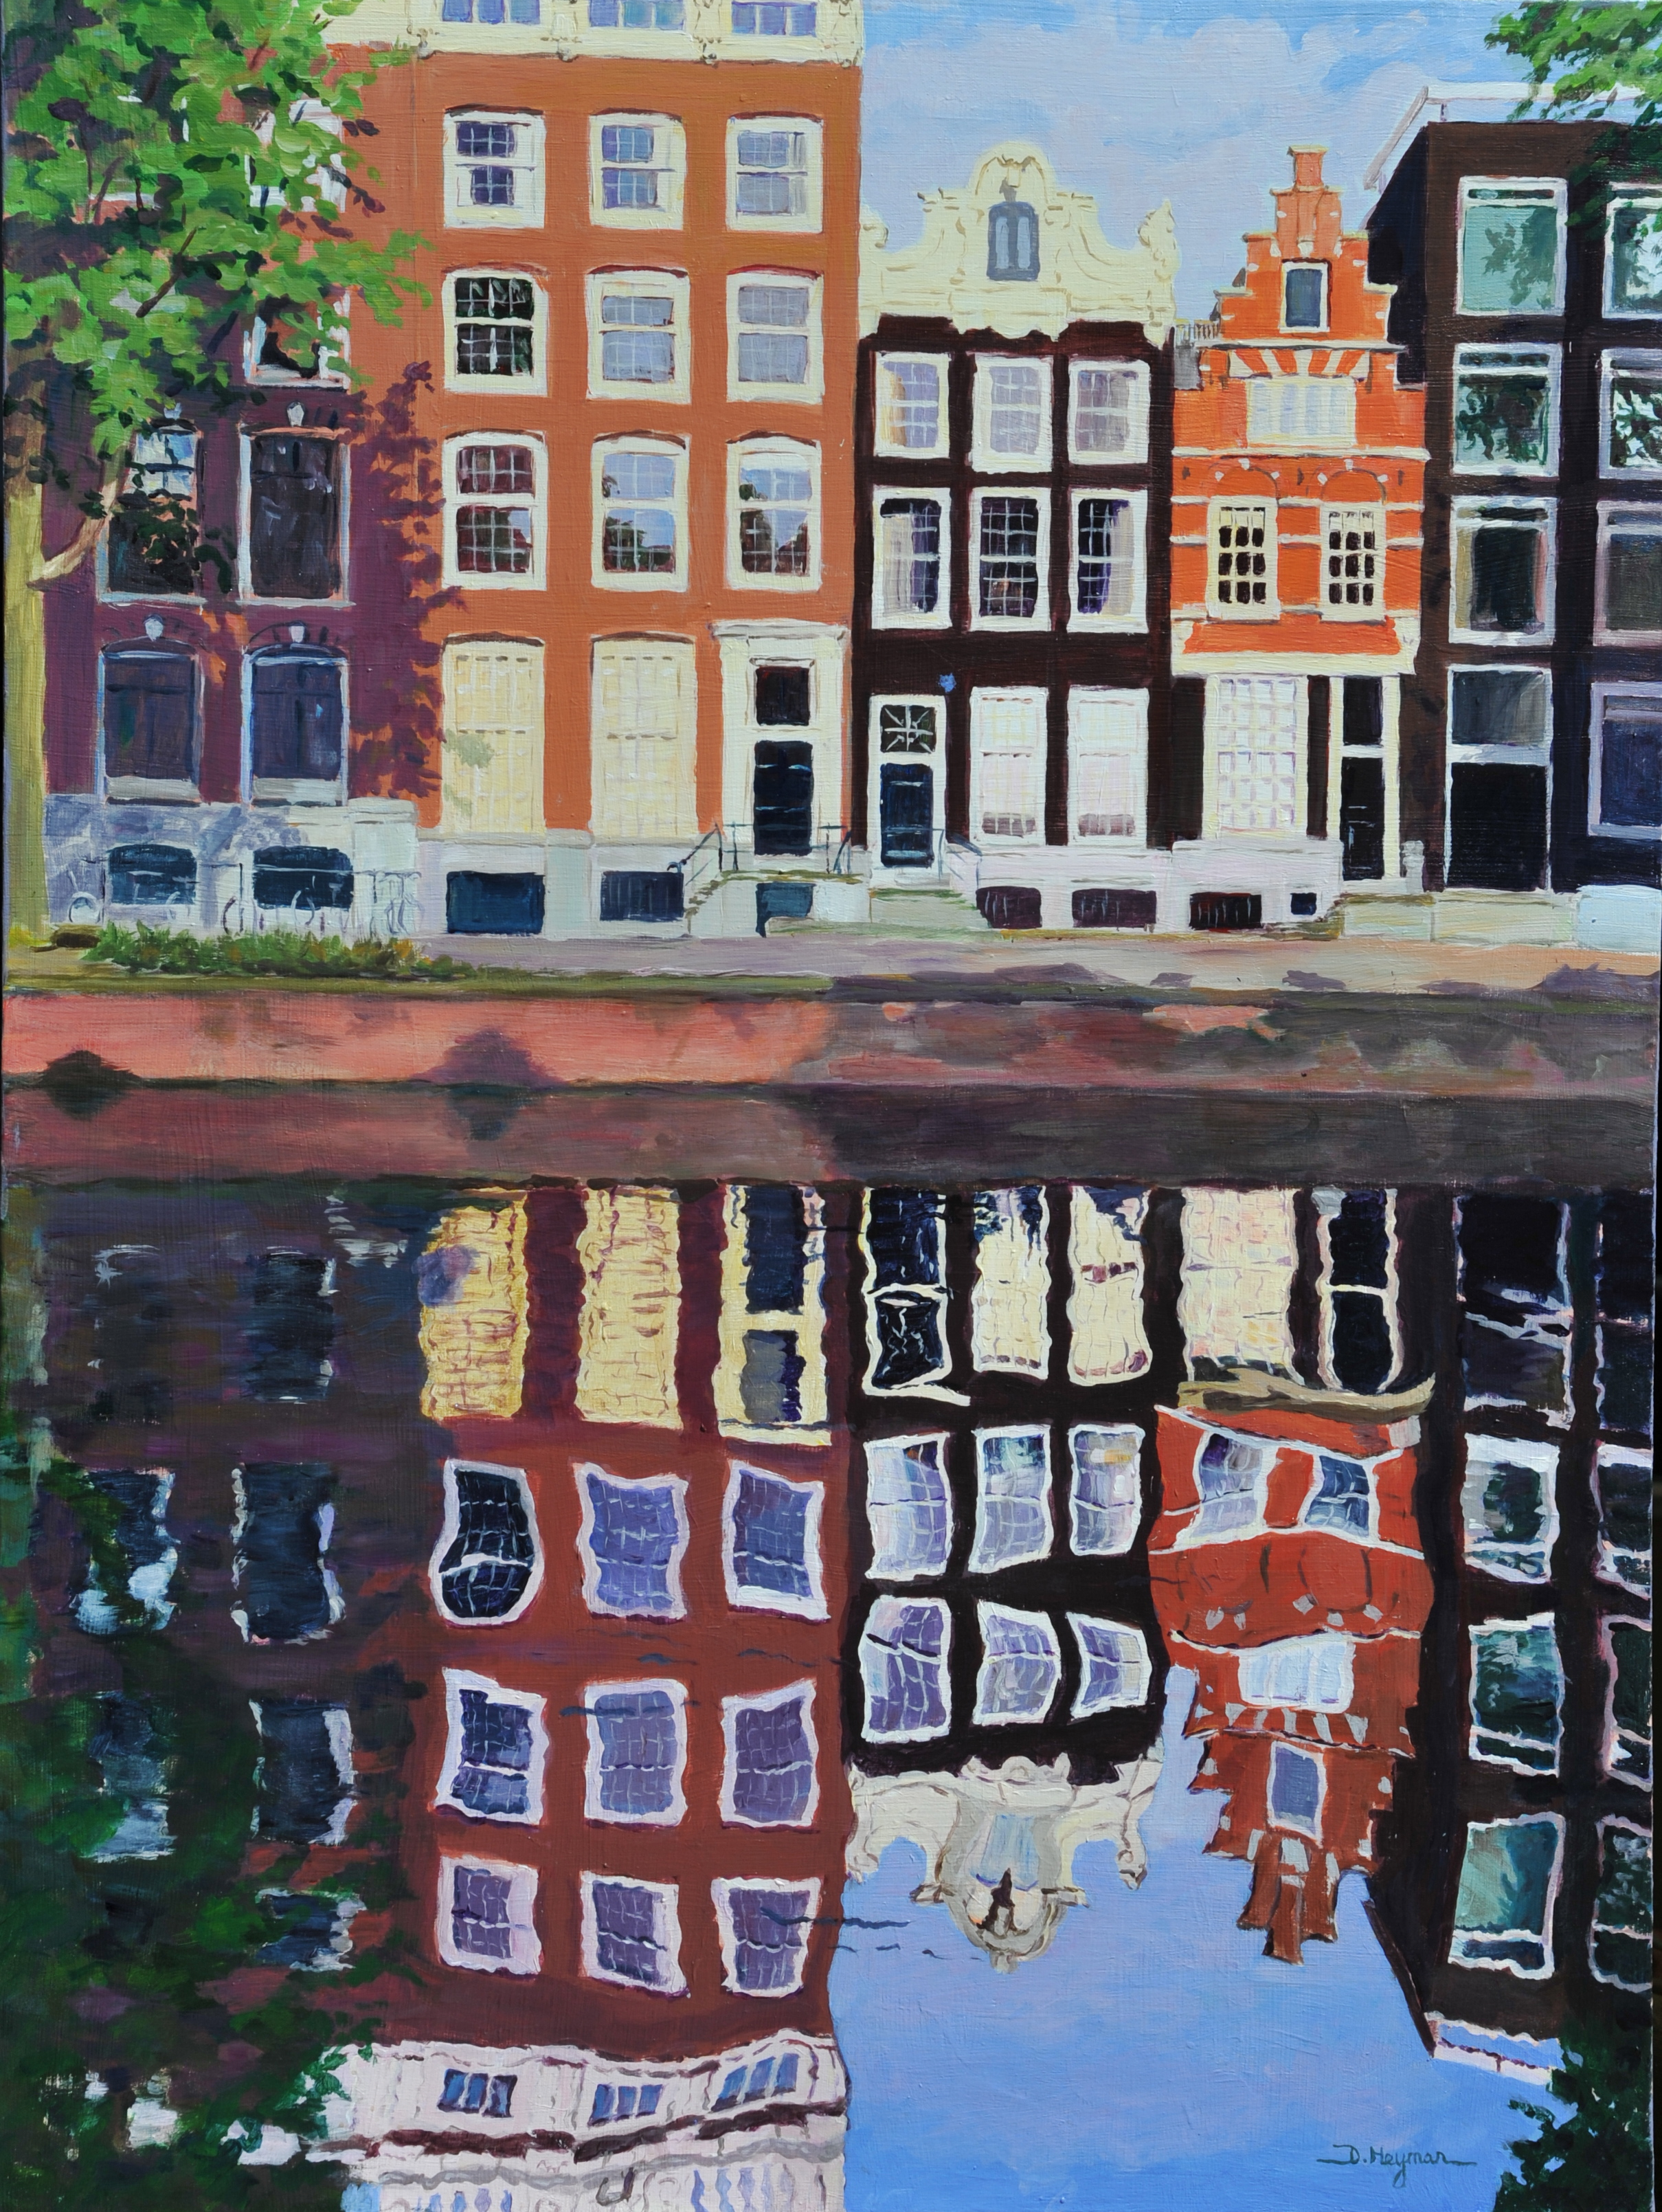 # 8, Early Morning in Amsterdam